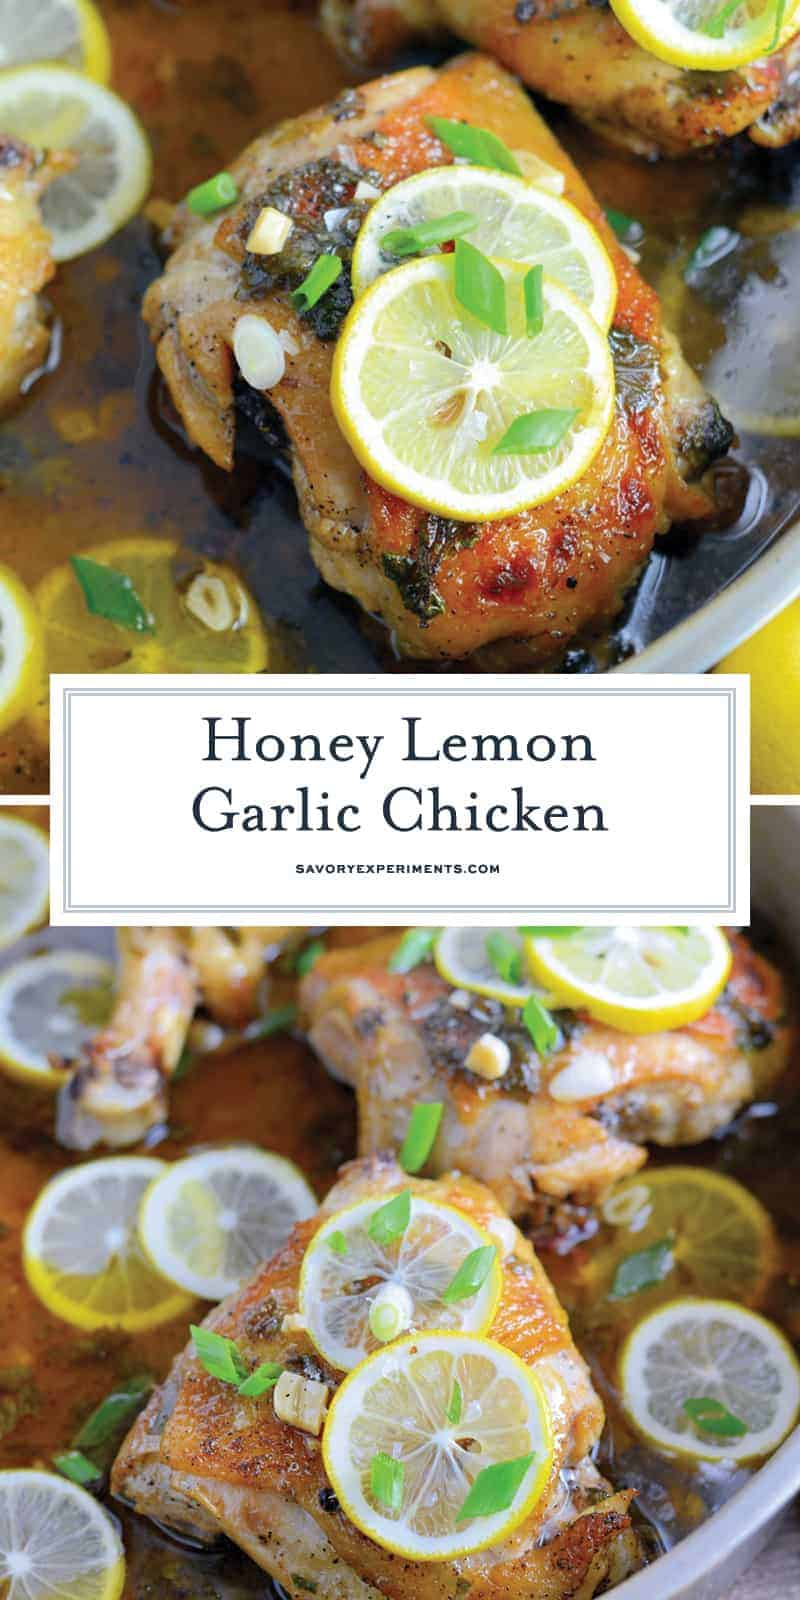 Honey Lemon Garlic Chicken is an easy dinner recipe made with garlic and honey to make this sauce bright and tasty! Serve lemon chicken over pasta, rice or toasted couscous. #chickenrecipes #lemongarlicchicken www.savoryexperiments.com